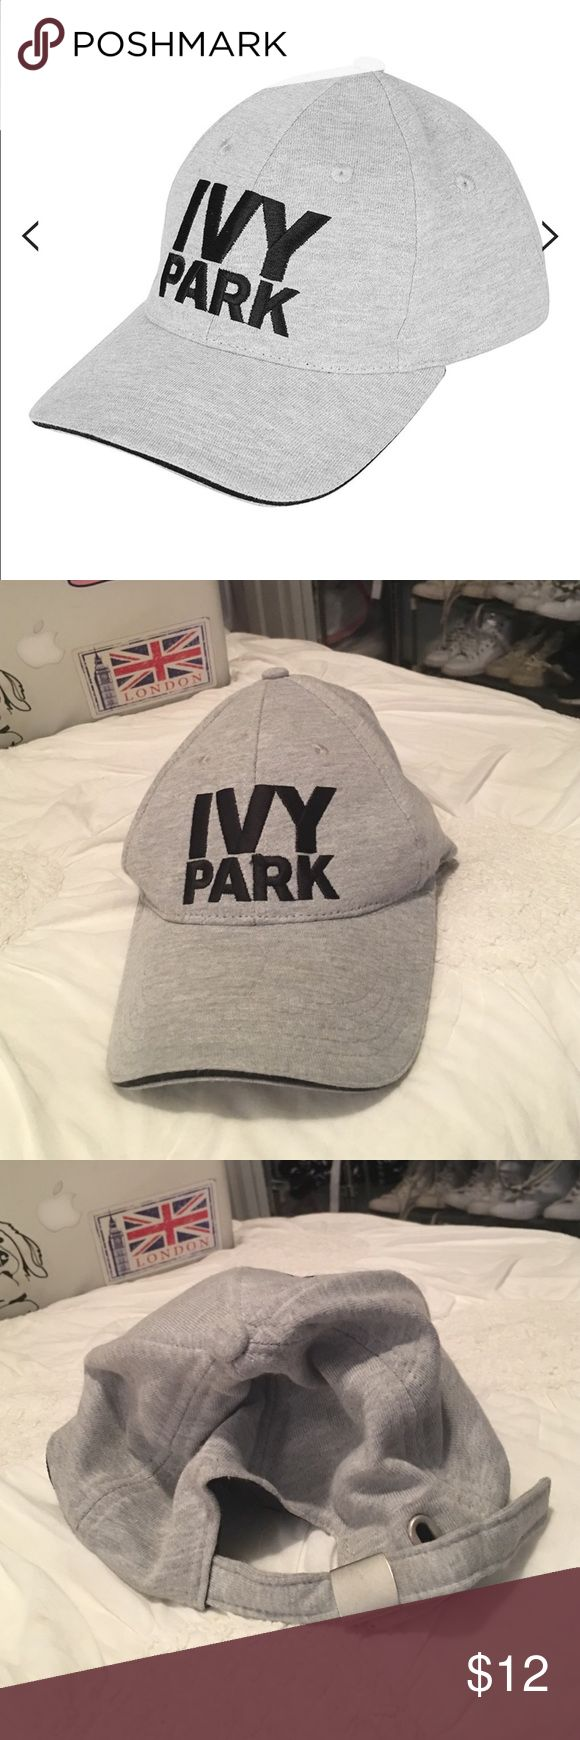 Ivy Park Grey Baseball Hat Beyoncé's athletic wear line! Purchased from Topshop. Like new condition! Crafted in a rich cotton, the baseball cap is designed with understated style in mind to compliment active and casual outfits perfectly. With a stacked Ivy Park logo to the front, it comes detailed with a contrast ribbing to the peak and antique silver metal adjuster clasp to the back for versatile wear. Topshop Accessories Hats